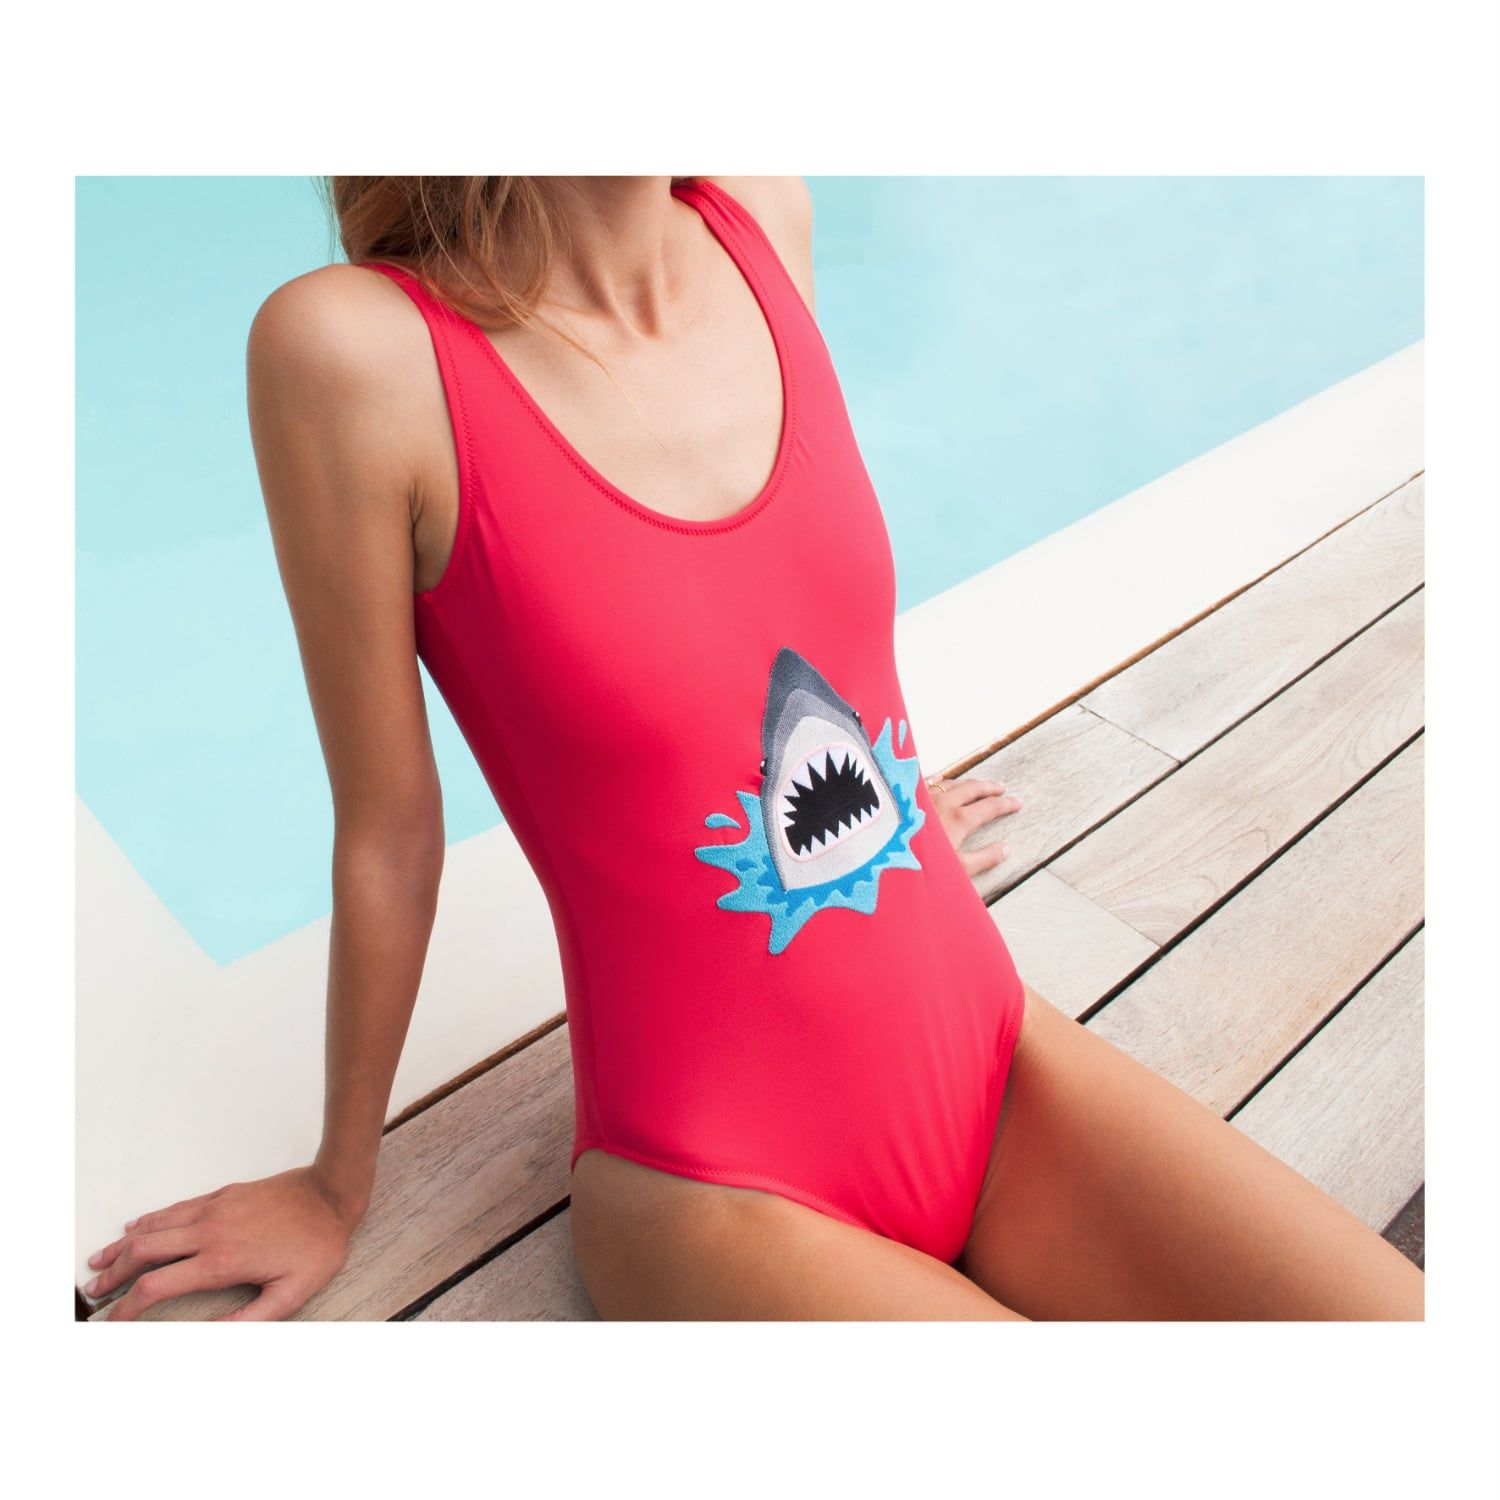 d63a8dd90c Browse Sharky Embroidered Swimsuit and more from My Pair of Jeans at Wolf    Badger - the leading destination for independent designer fashion